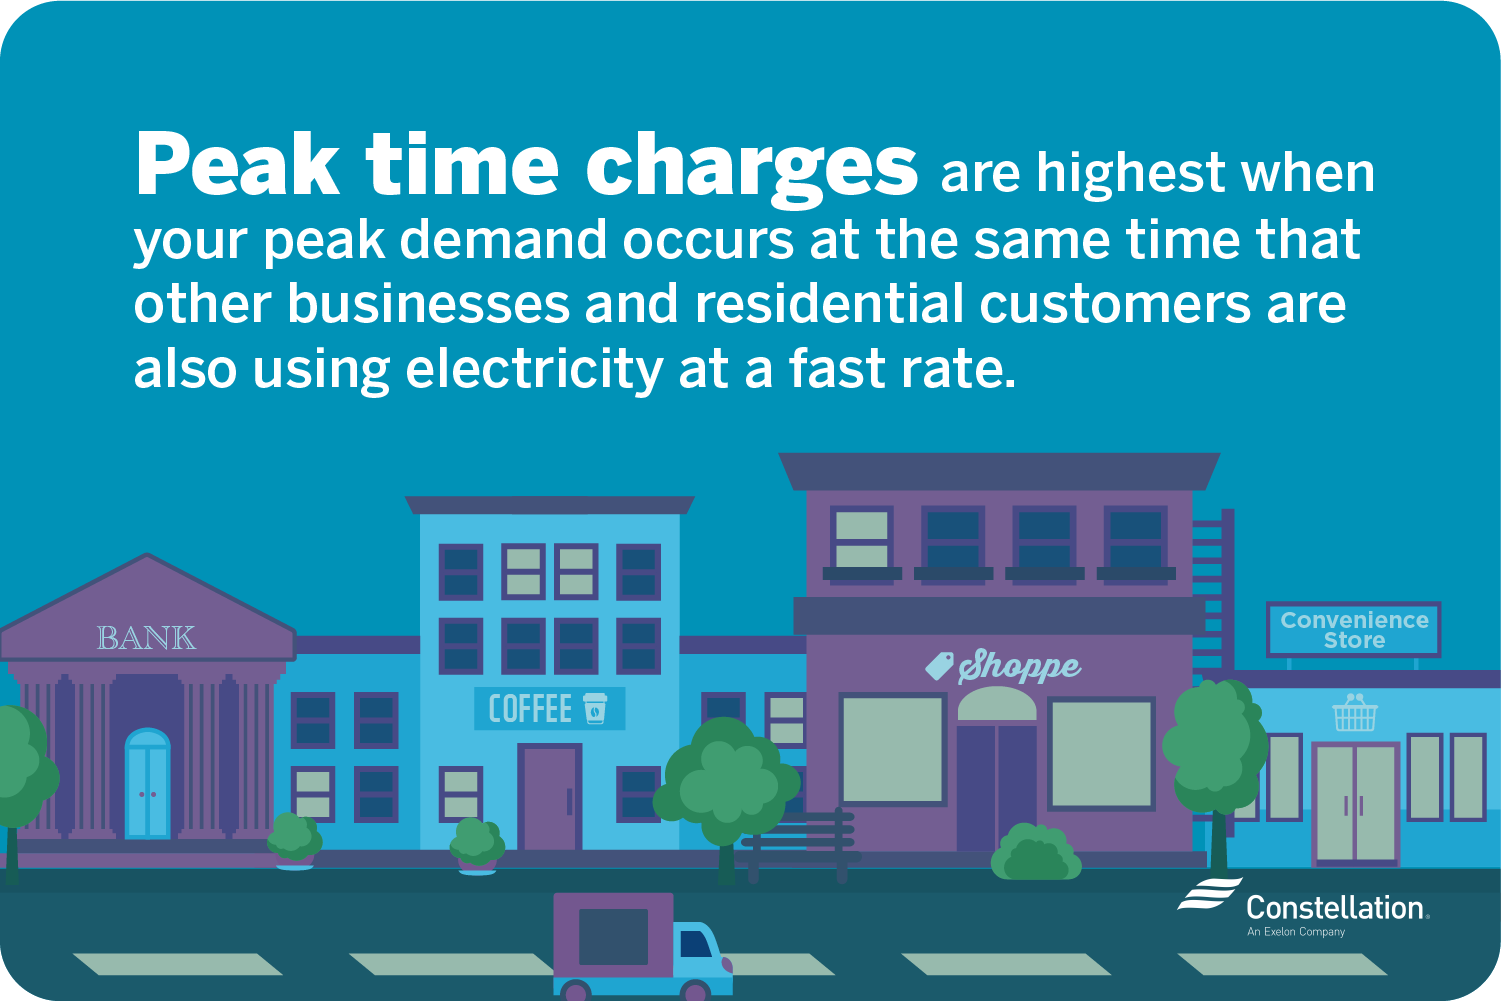 When are peak time charges highest